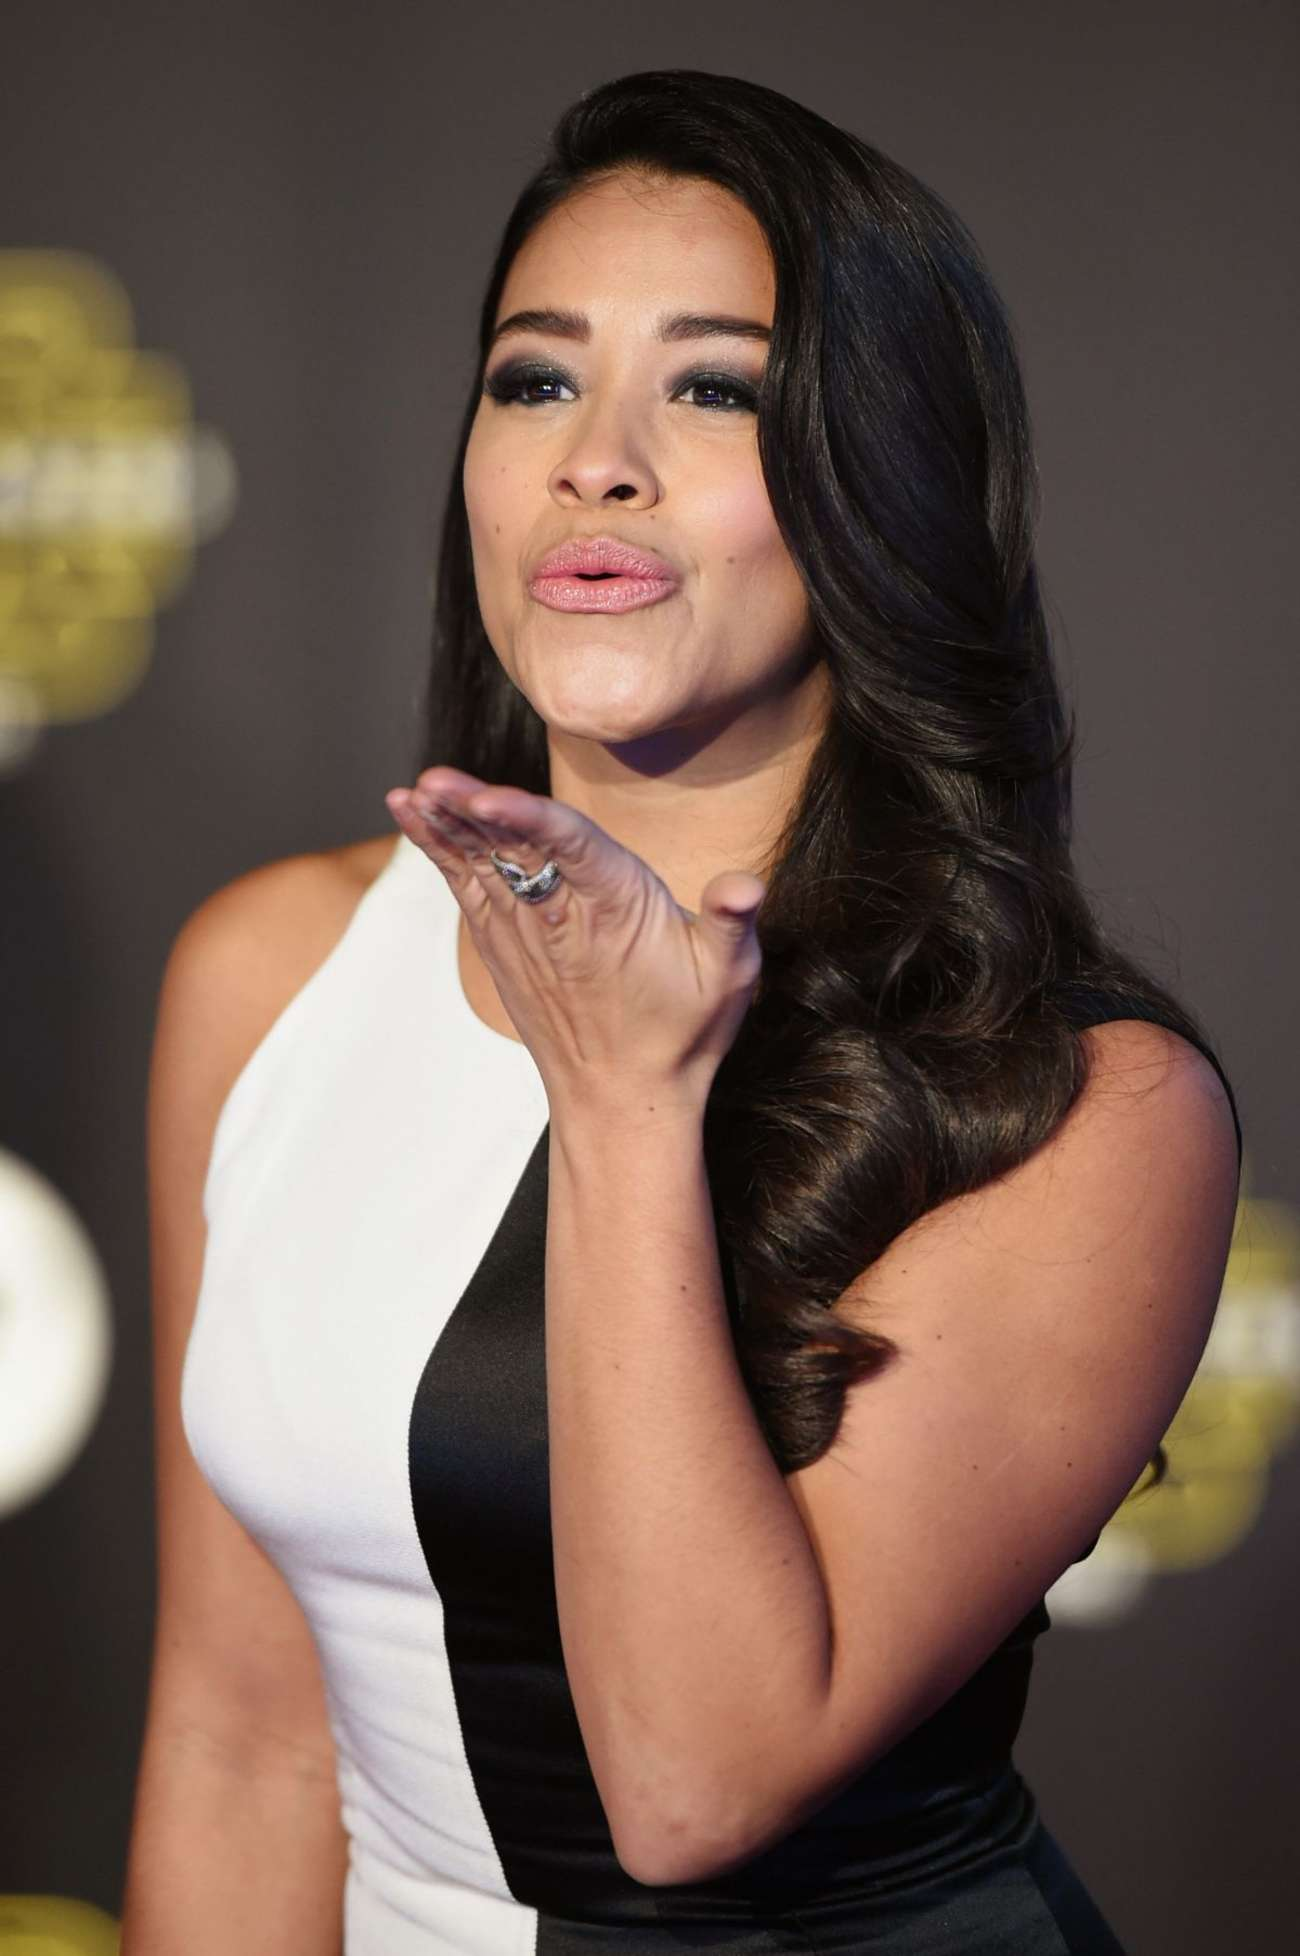 Gina Rodriguez Star Wars The Force Awakens Premiere